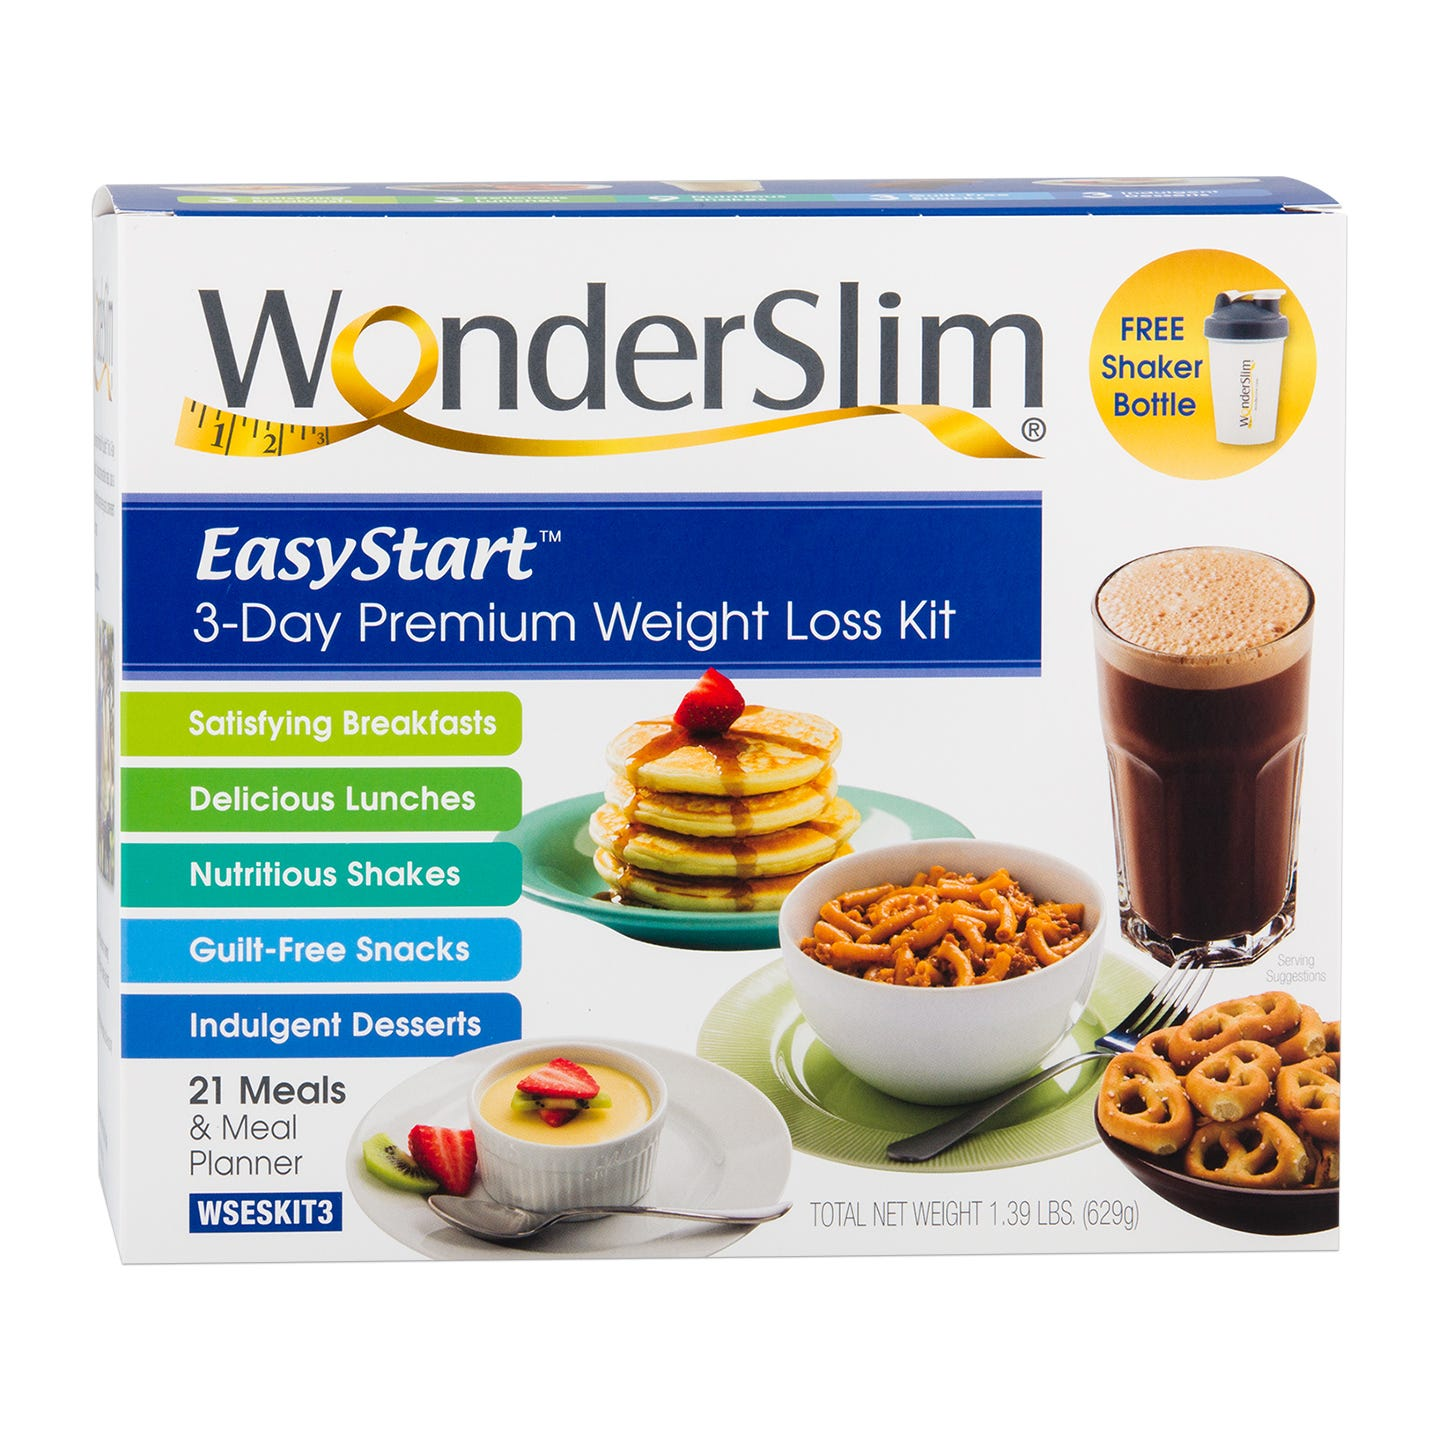 EasyStart™ Premium 3-Day Diet/Weight Loss Kit From WonderSlim